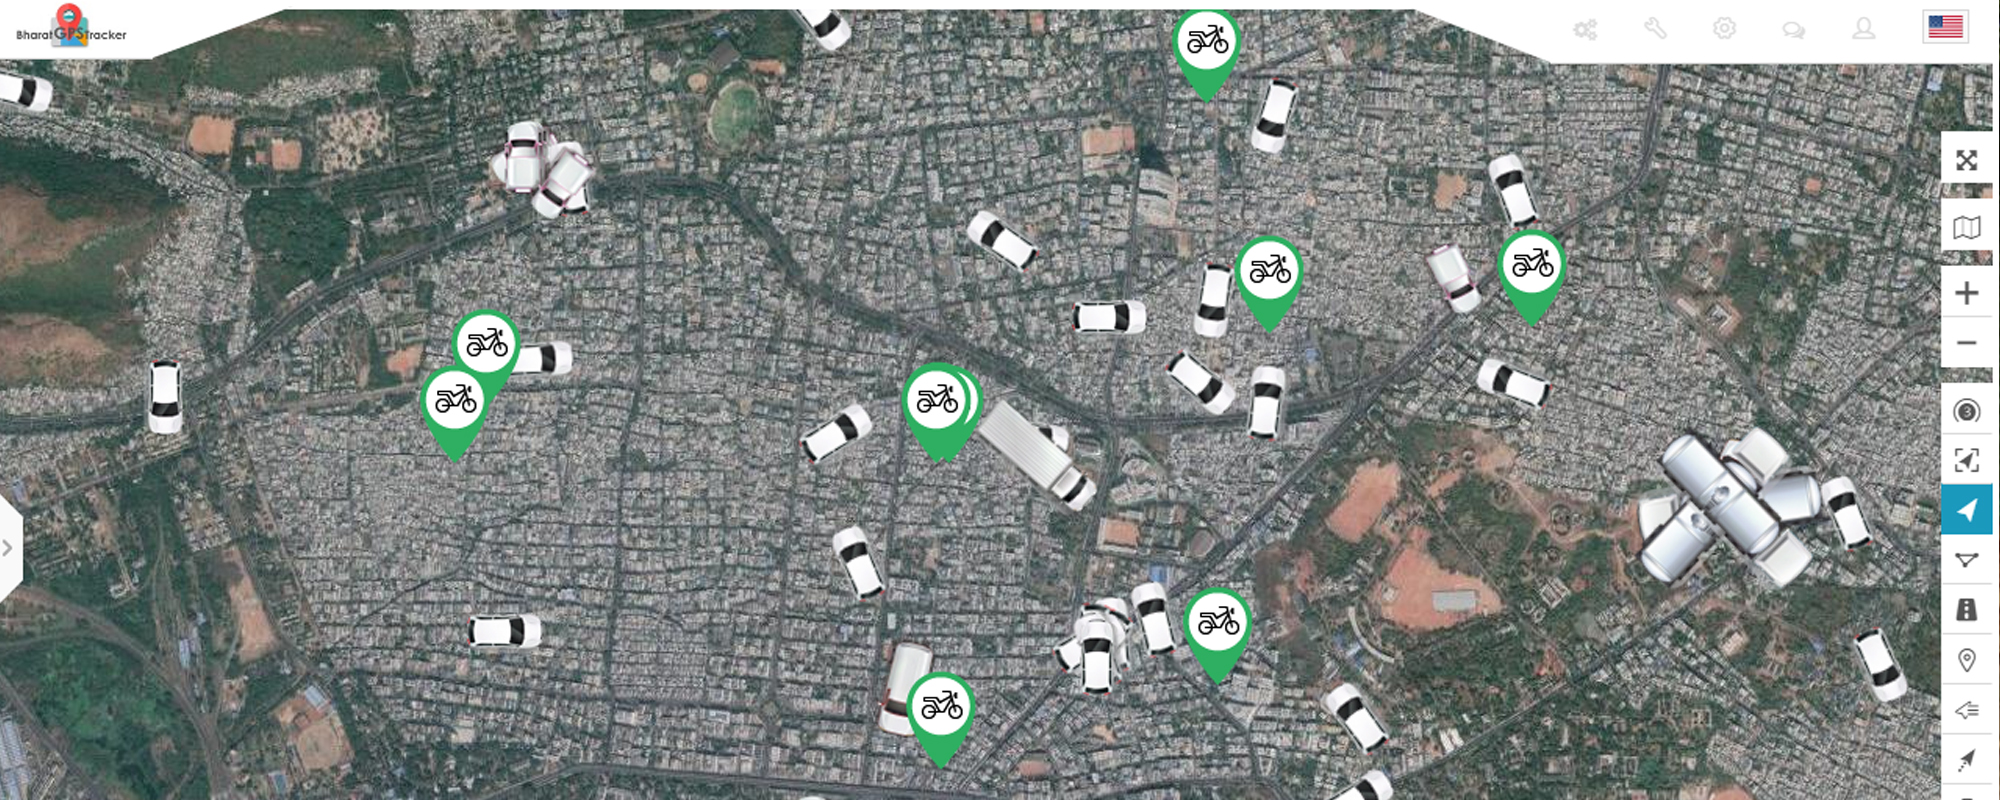 Bharat Gps Tracker Vehicle Gps Tracking Service In India